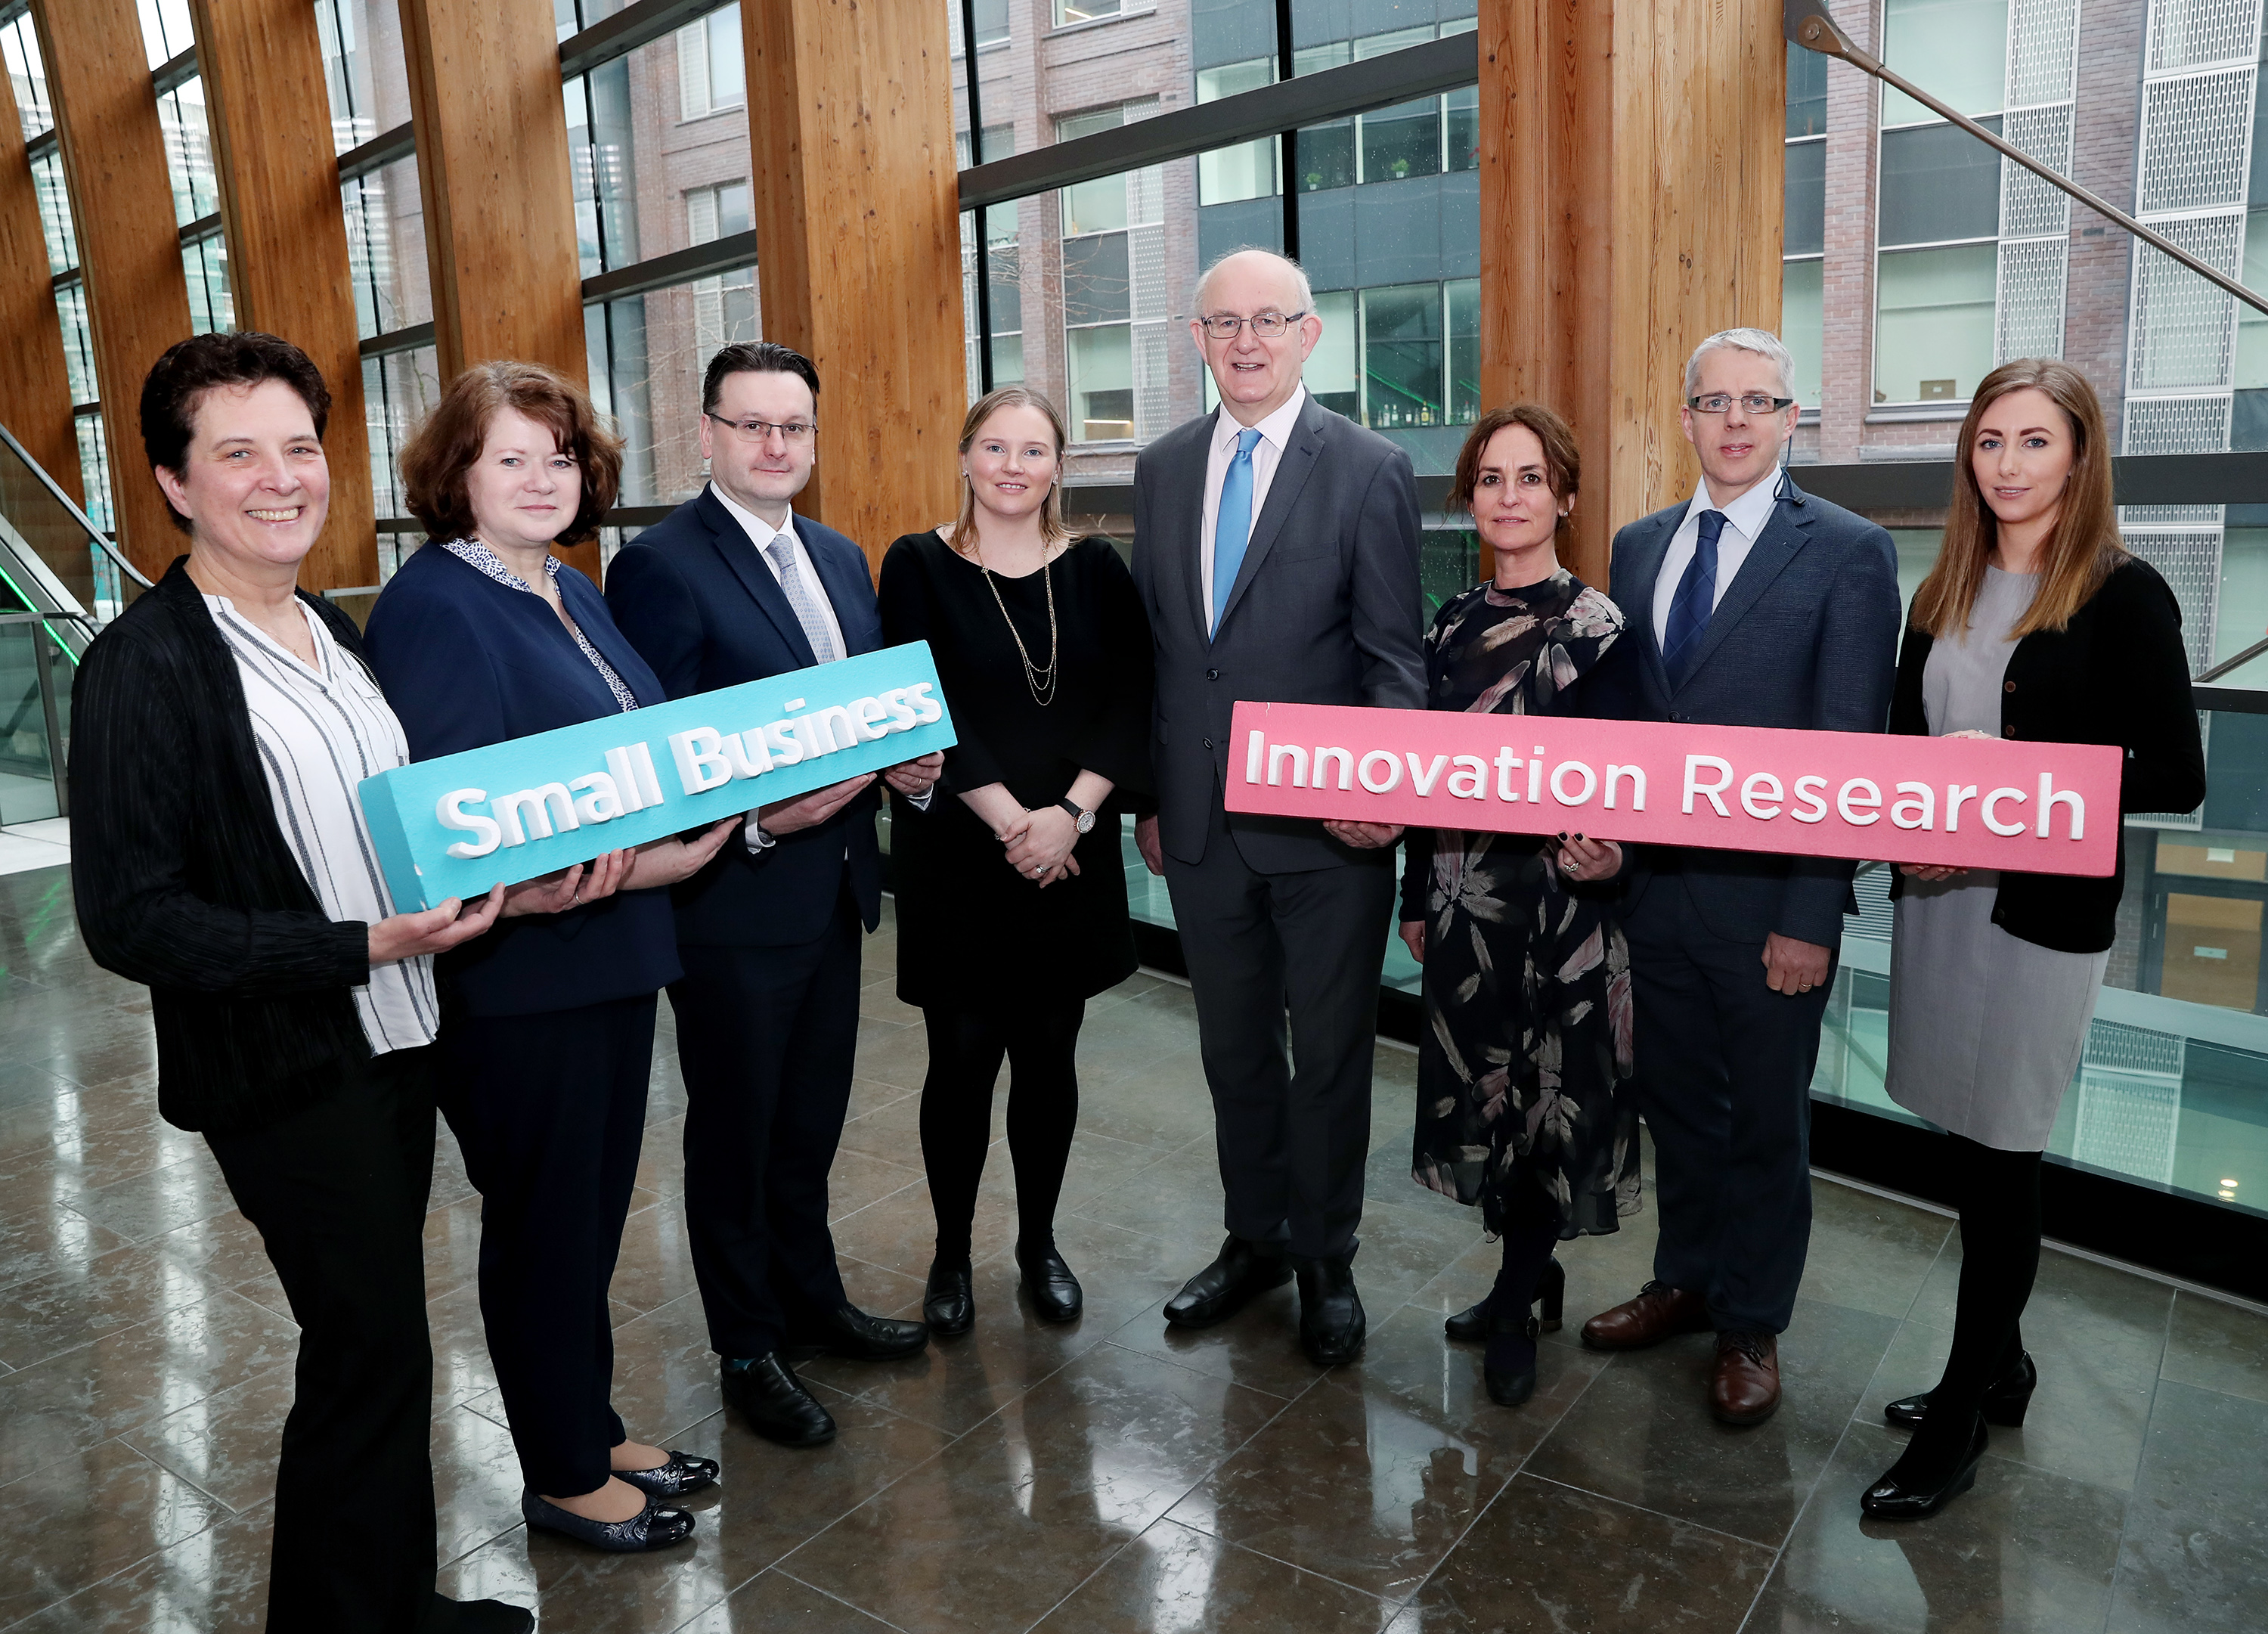 Enterprise Ireland approves €1.14m co-funding for Small Business Innovation Research (SBIR) Competitive Challenges